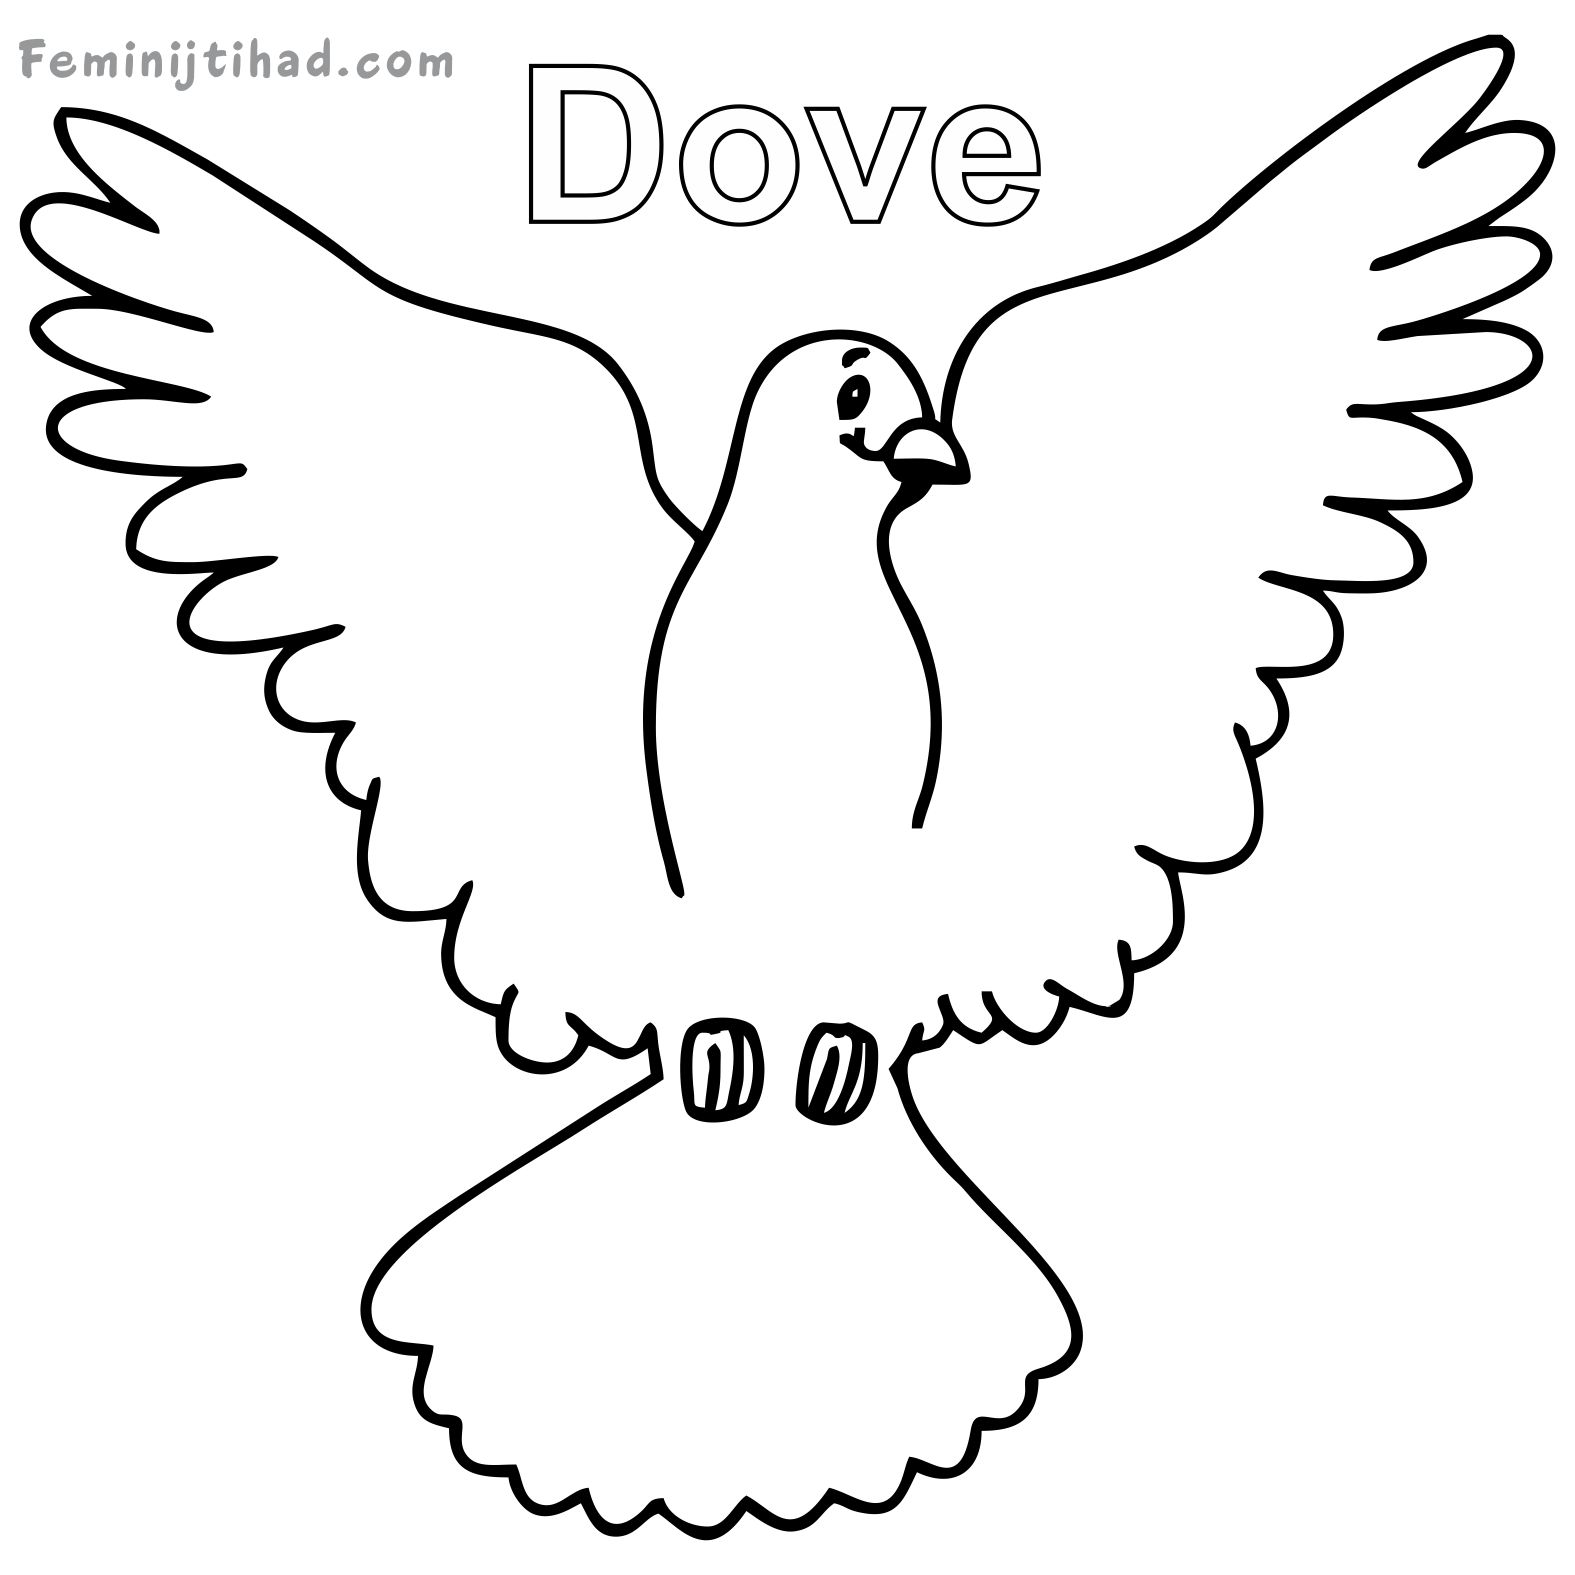 1575x1575 Dove Coloring Sheets To Print Coloring Pages For Kids